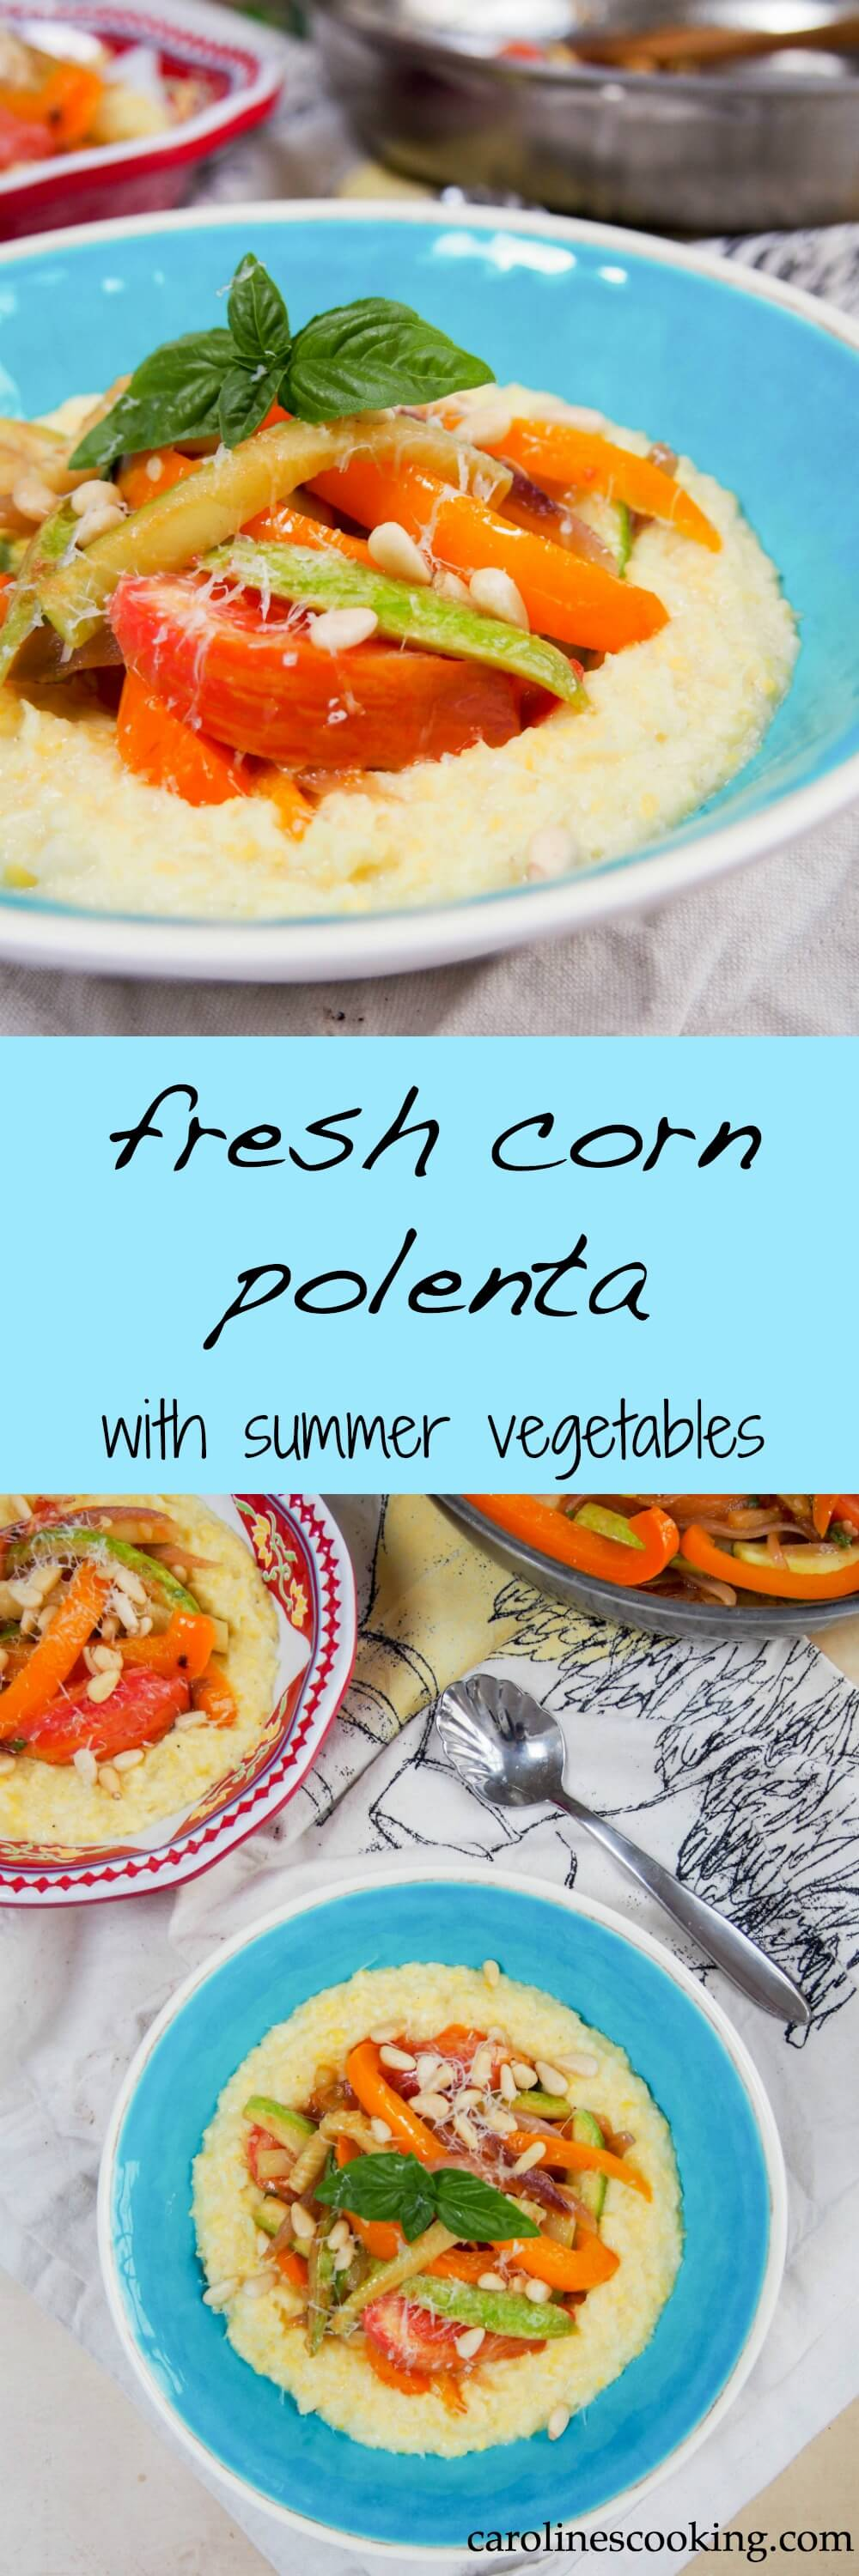 Fresh corn polenta with summer vegetables is a delicious way to enjoy the comfort-factor of polenta with the fresh flavor of summer corn. Such a tasty vegetarian meal. #vegetarian #summer #corn